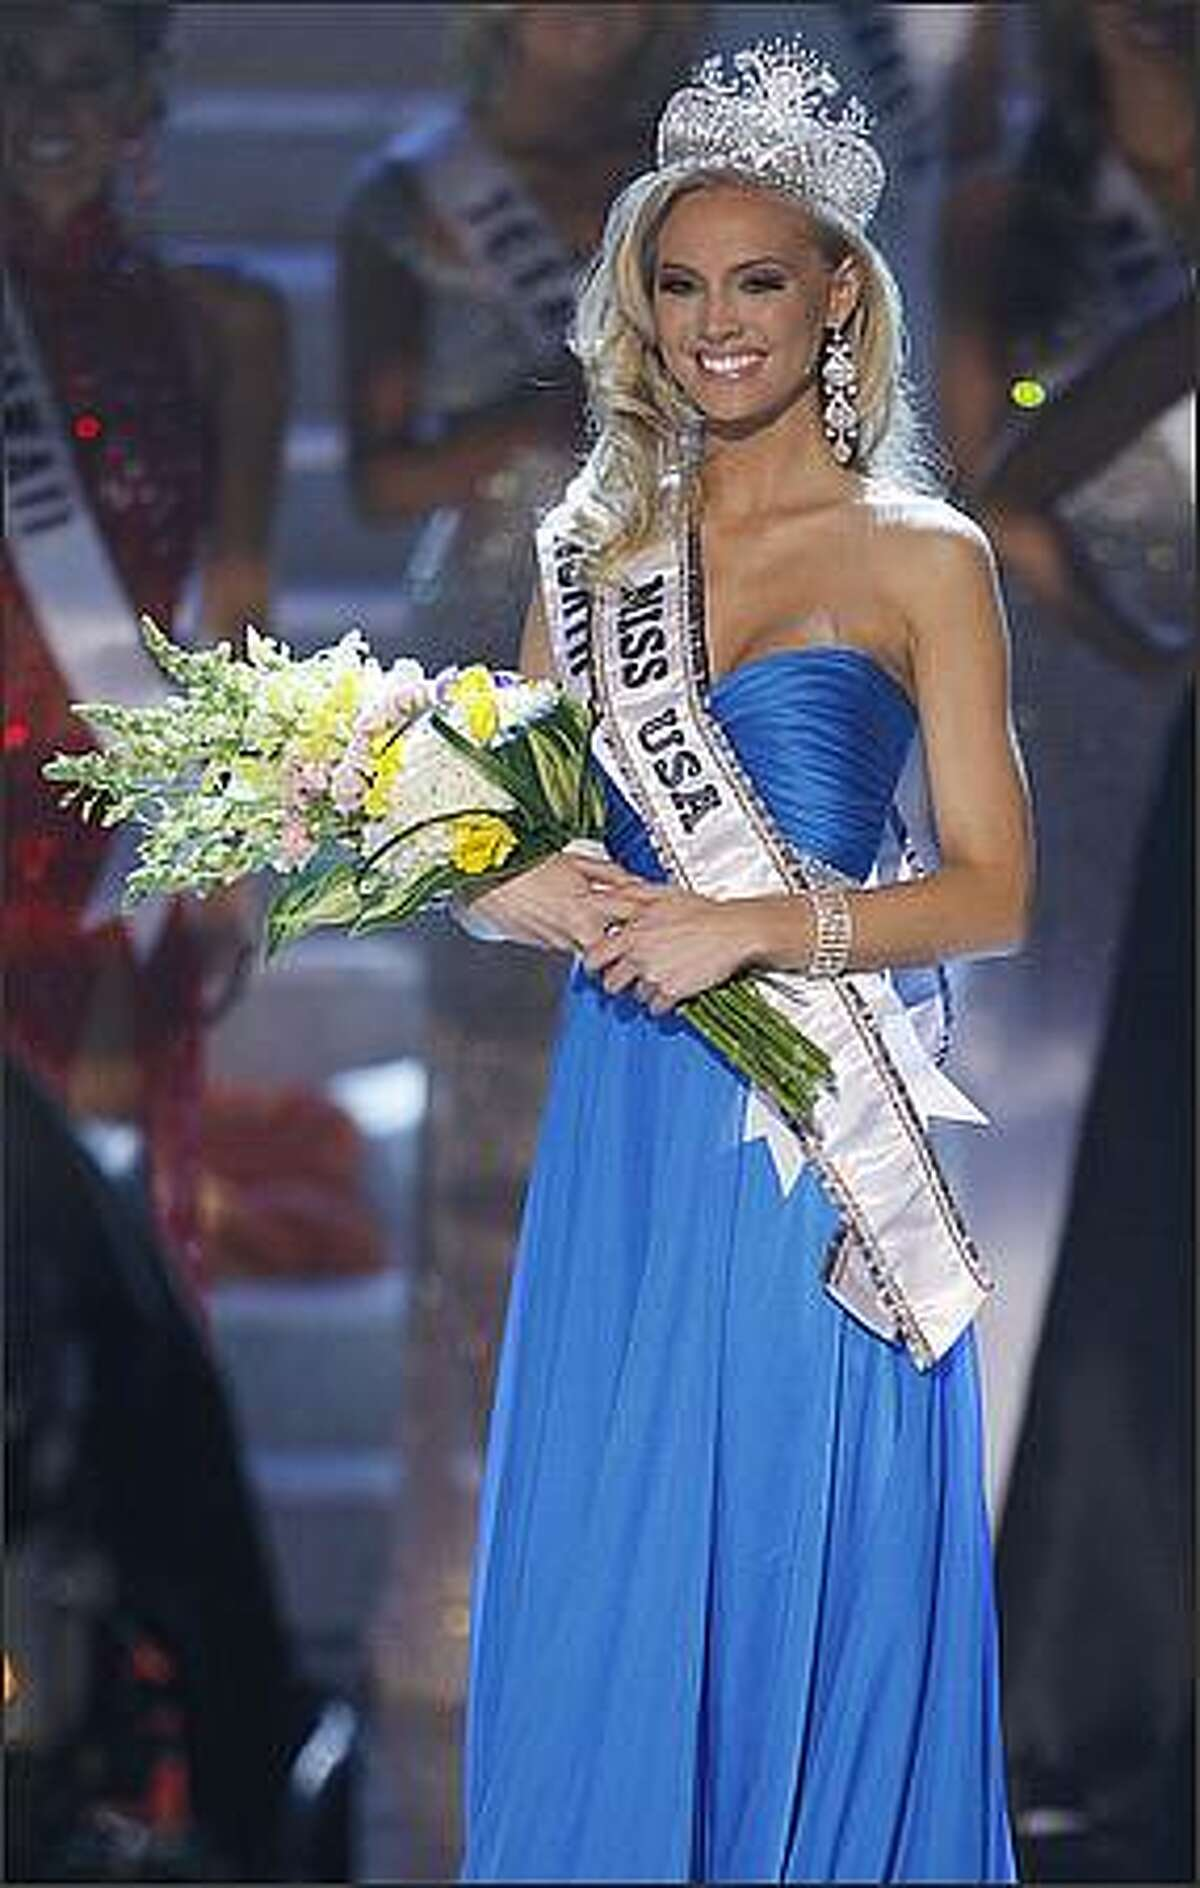 Miss North Carolina Kristen Dalton smiles after being crowned Miss USA on Sunday in Las Vegas. (AP Photo/Eric Jamison)